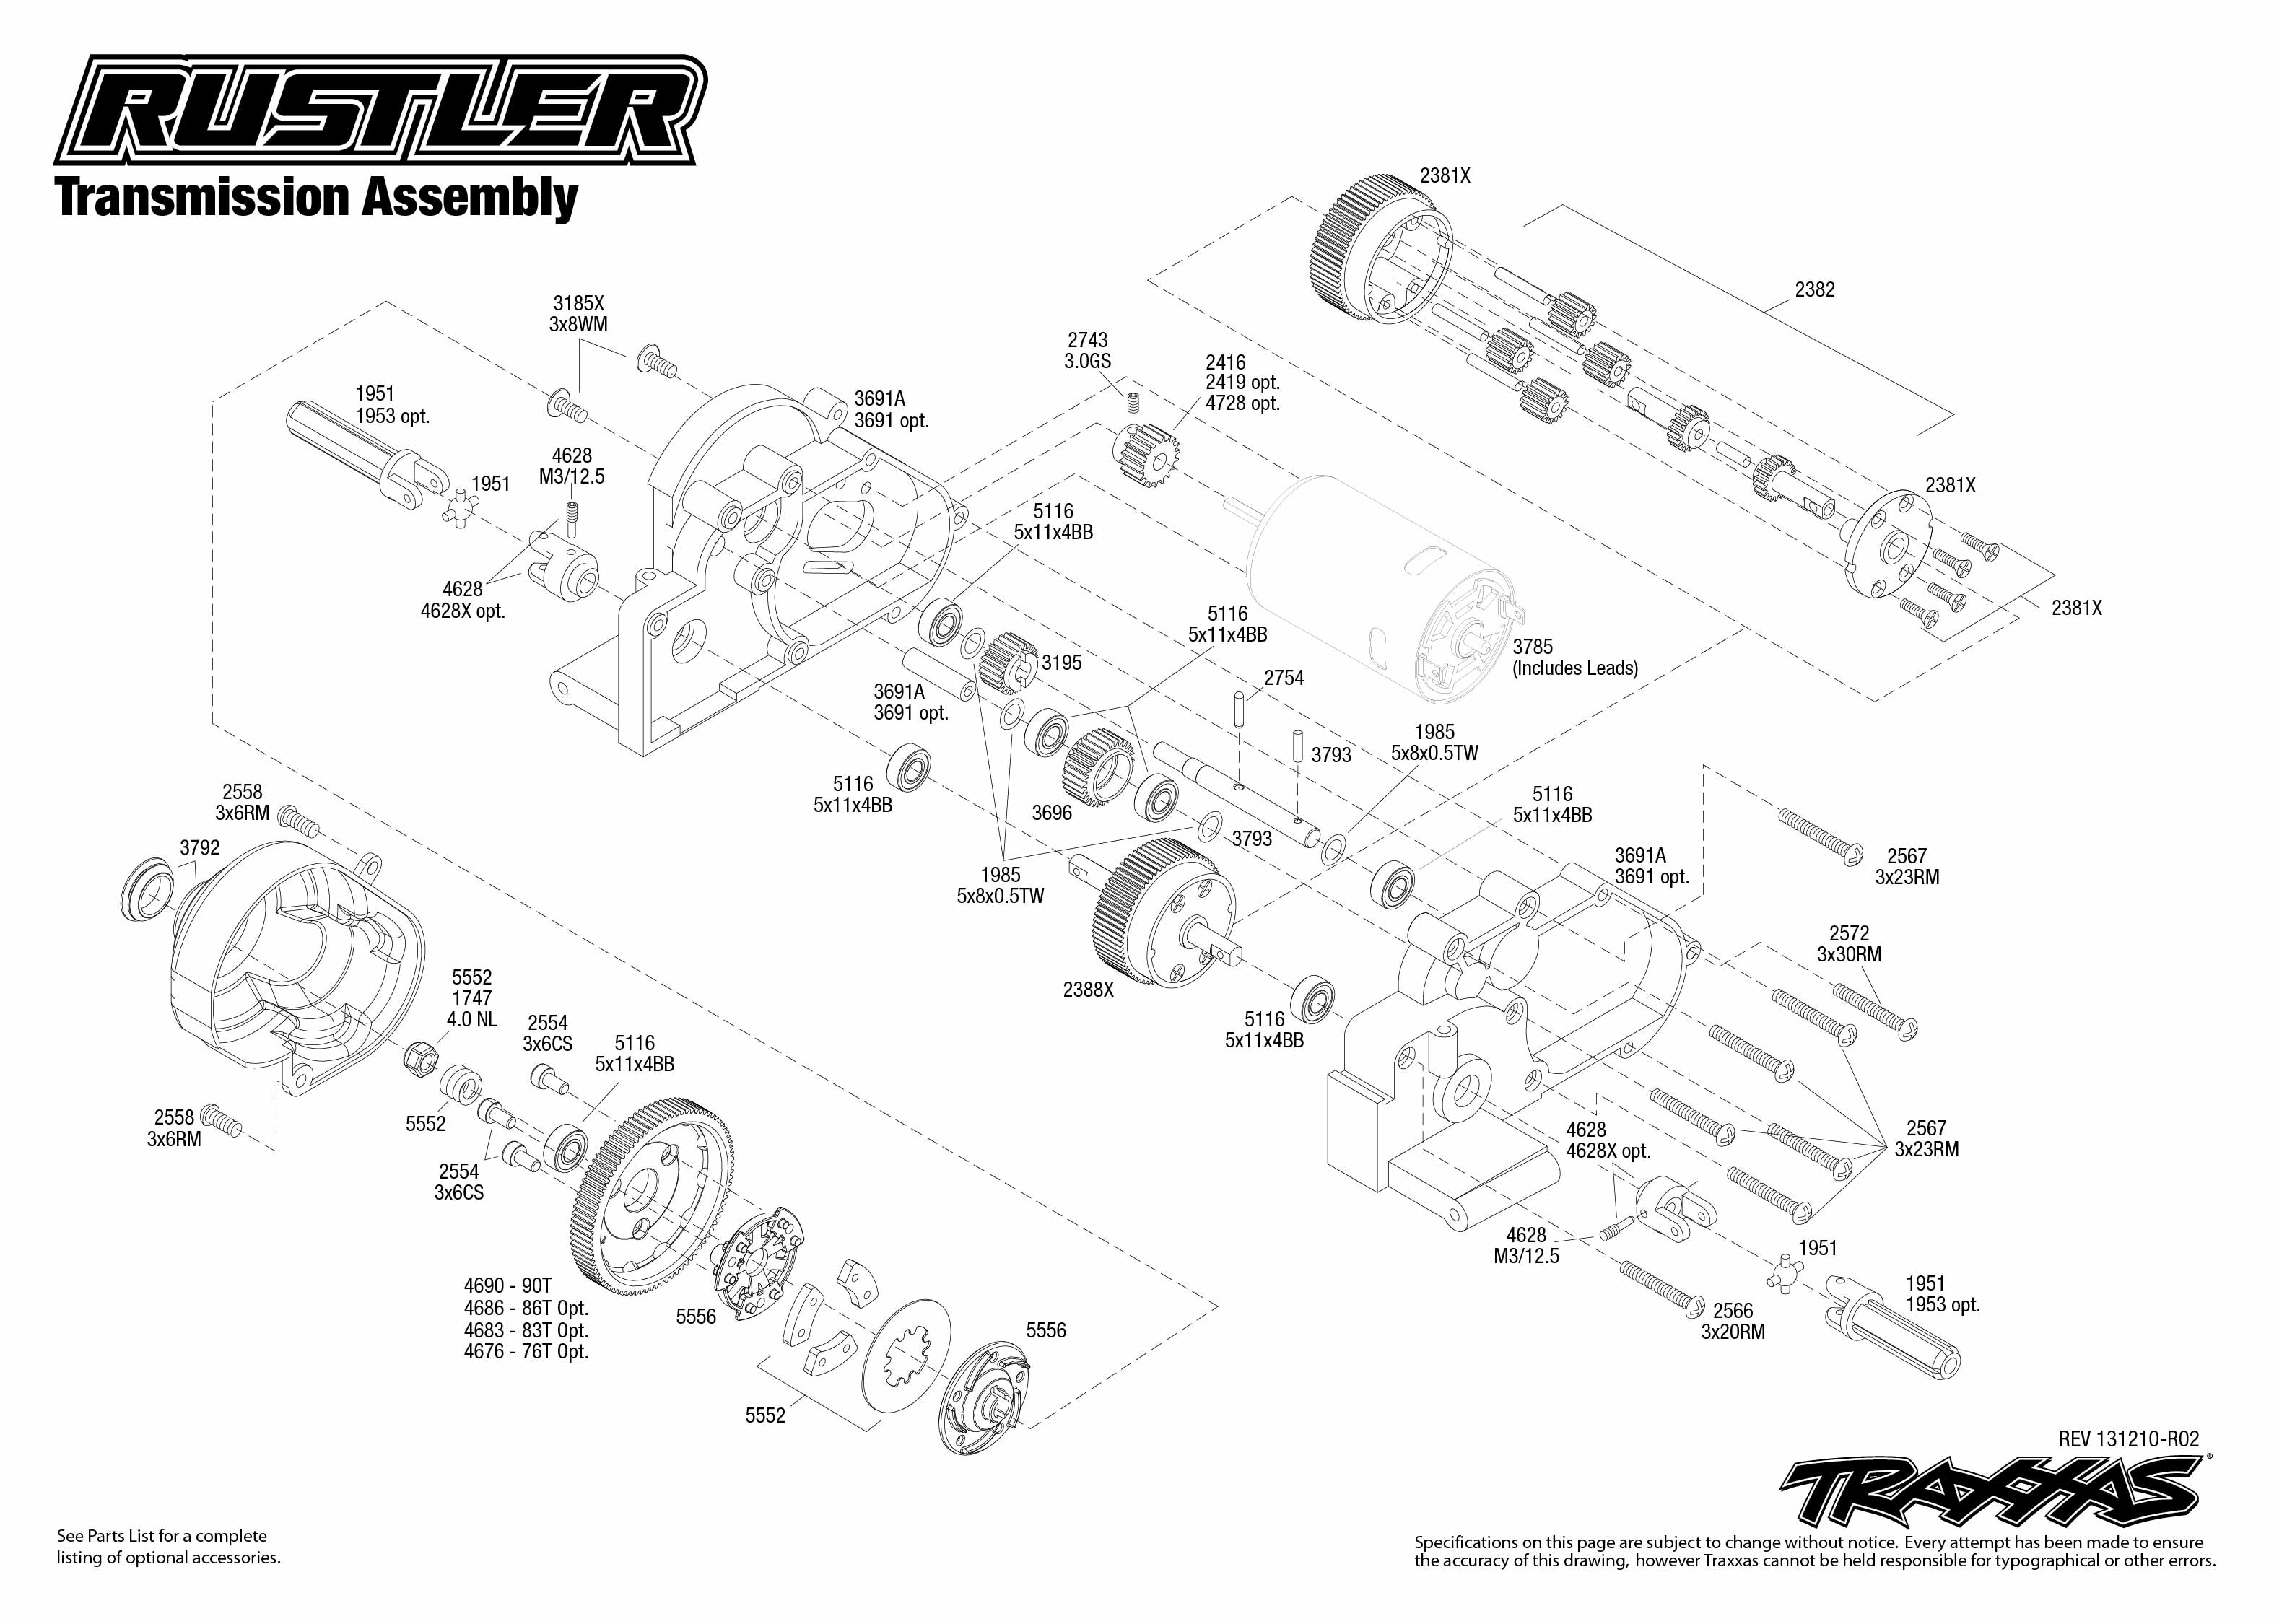 rustler 37054 transmission assembly traxxas : traxxas rustler diagram - findchart.co